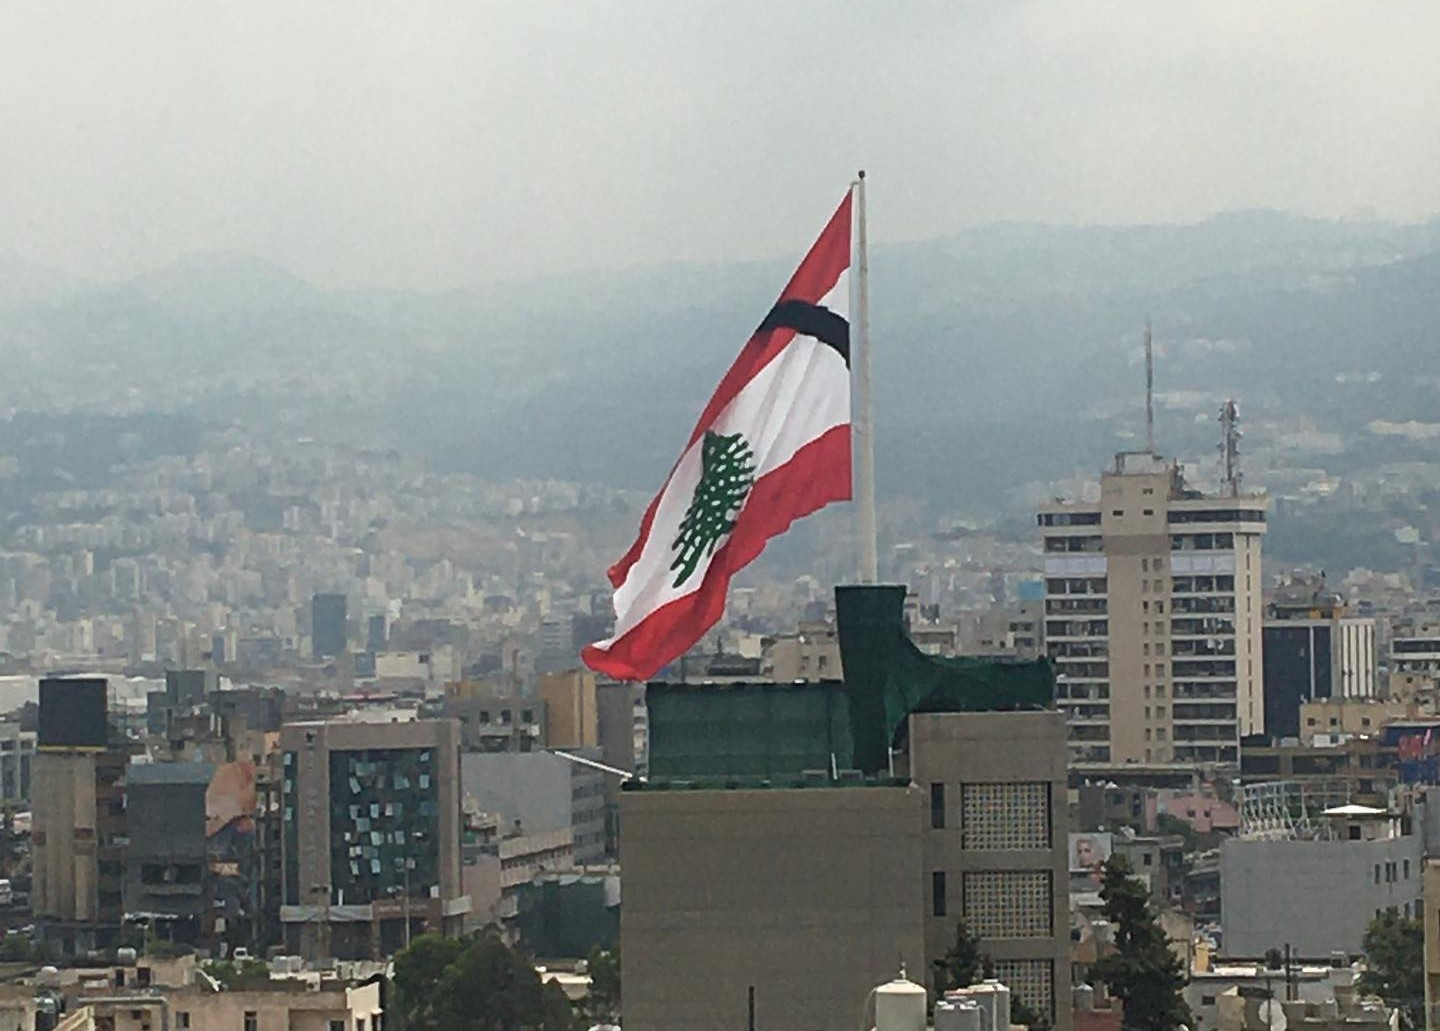 Triumphant Mercy Reminds Hopeless Lebanese that God Has Not Deserted them